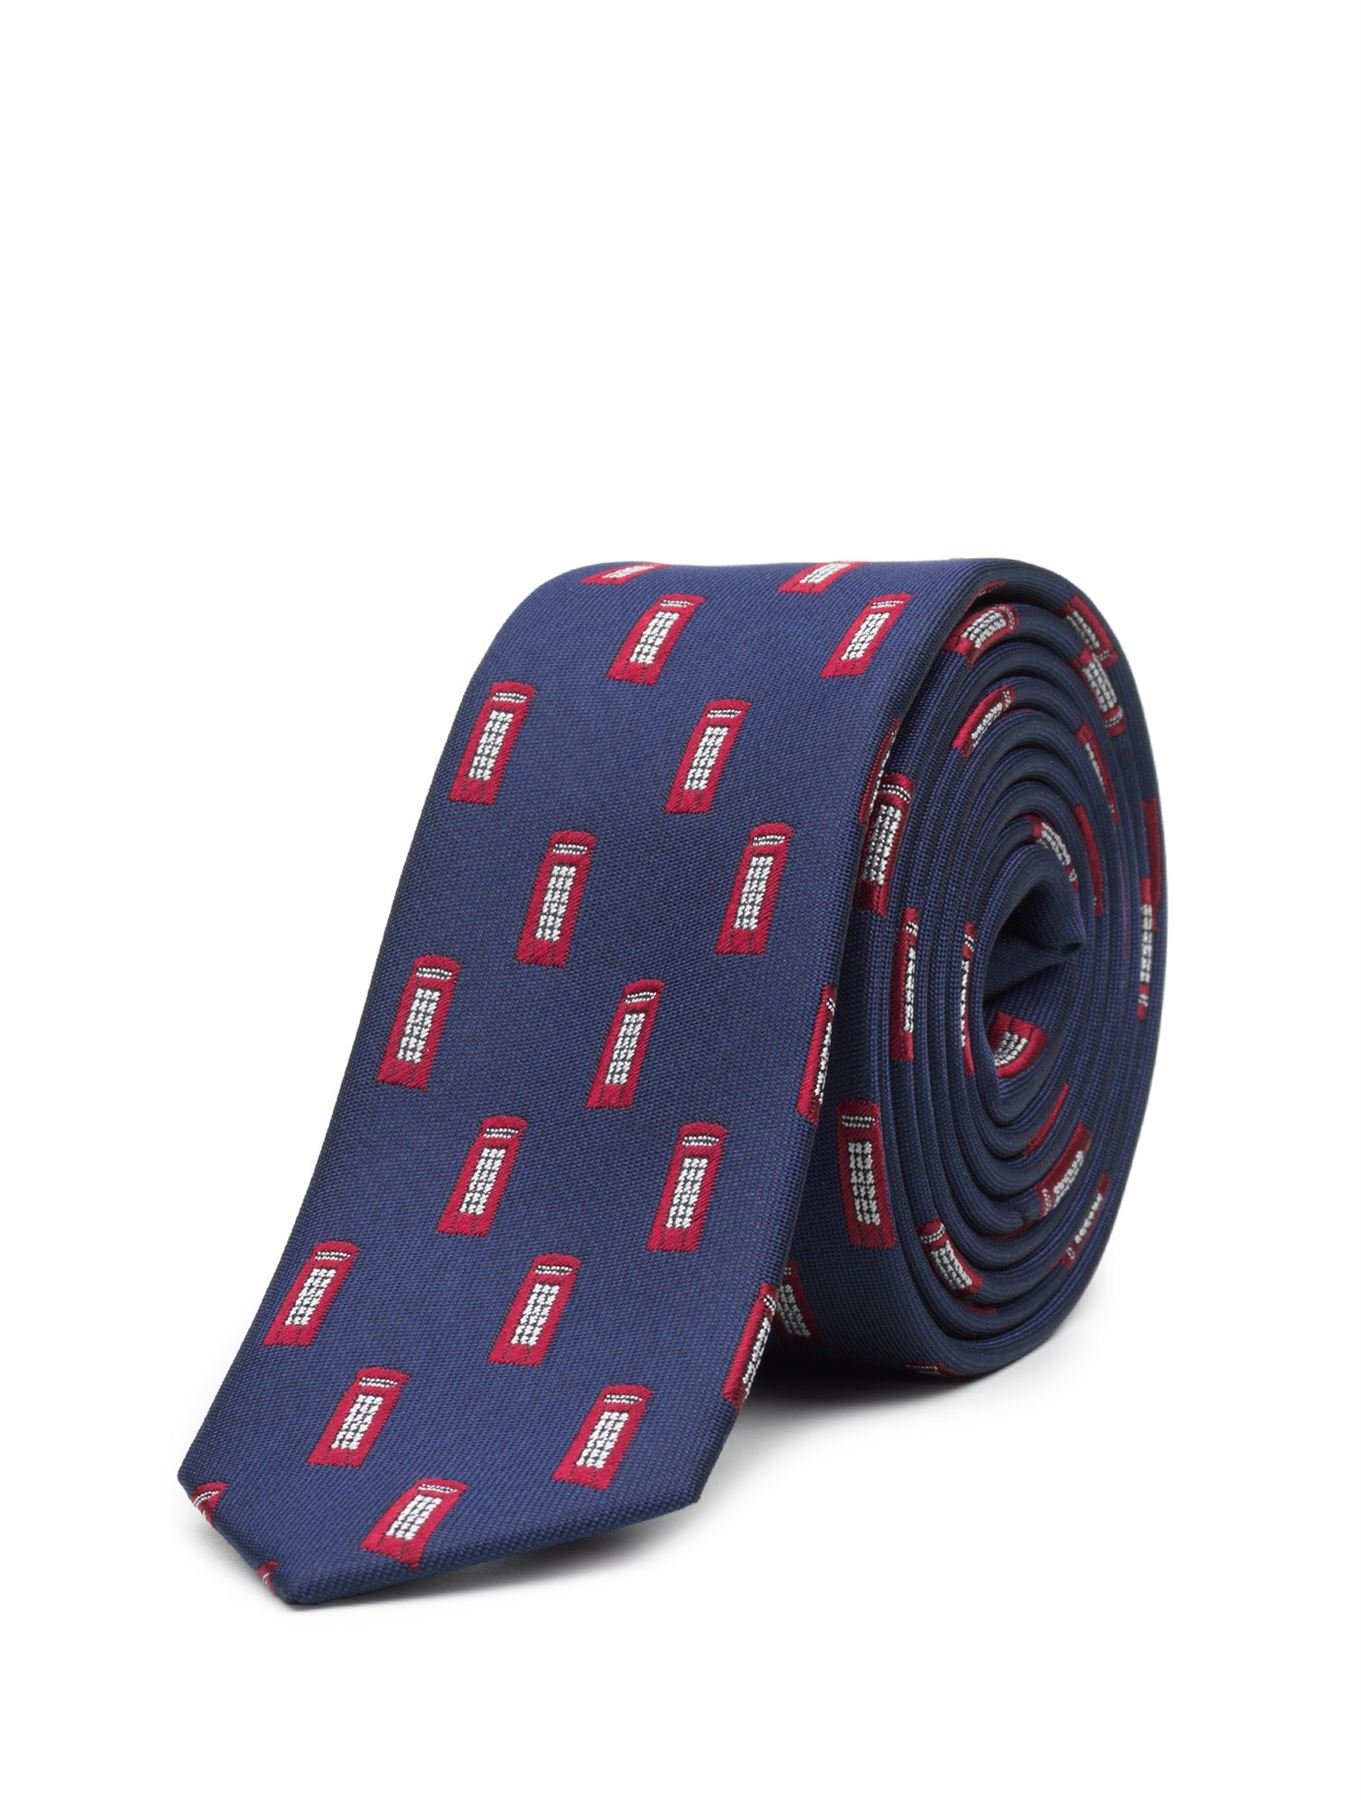 Paisley of London, Boys Royal Blue Telephone Box Slim Tie, One Size